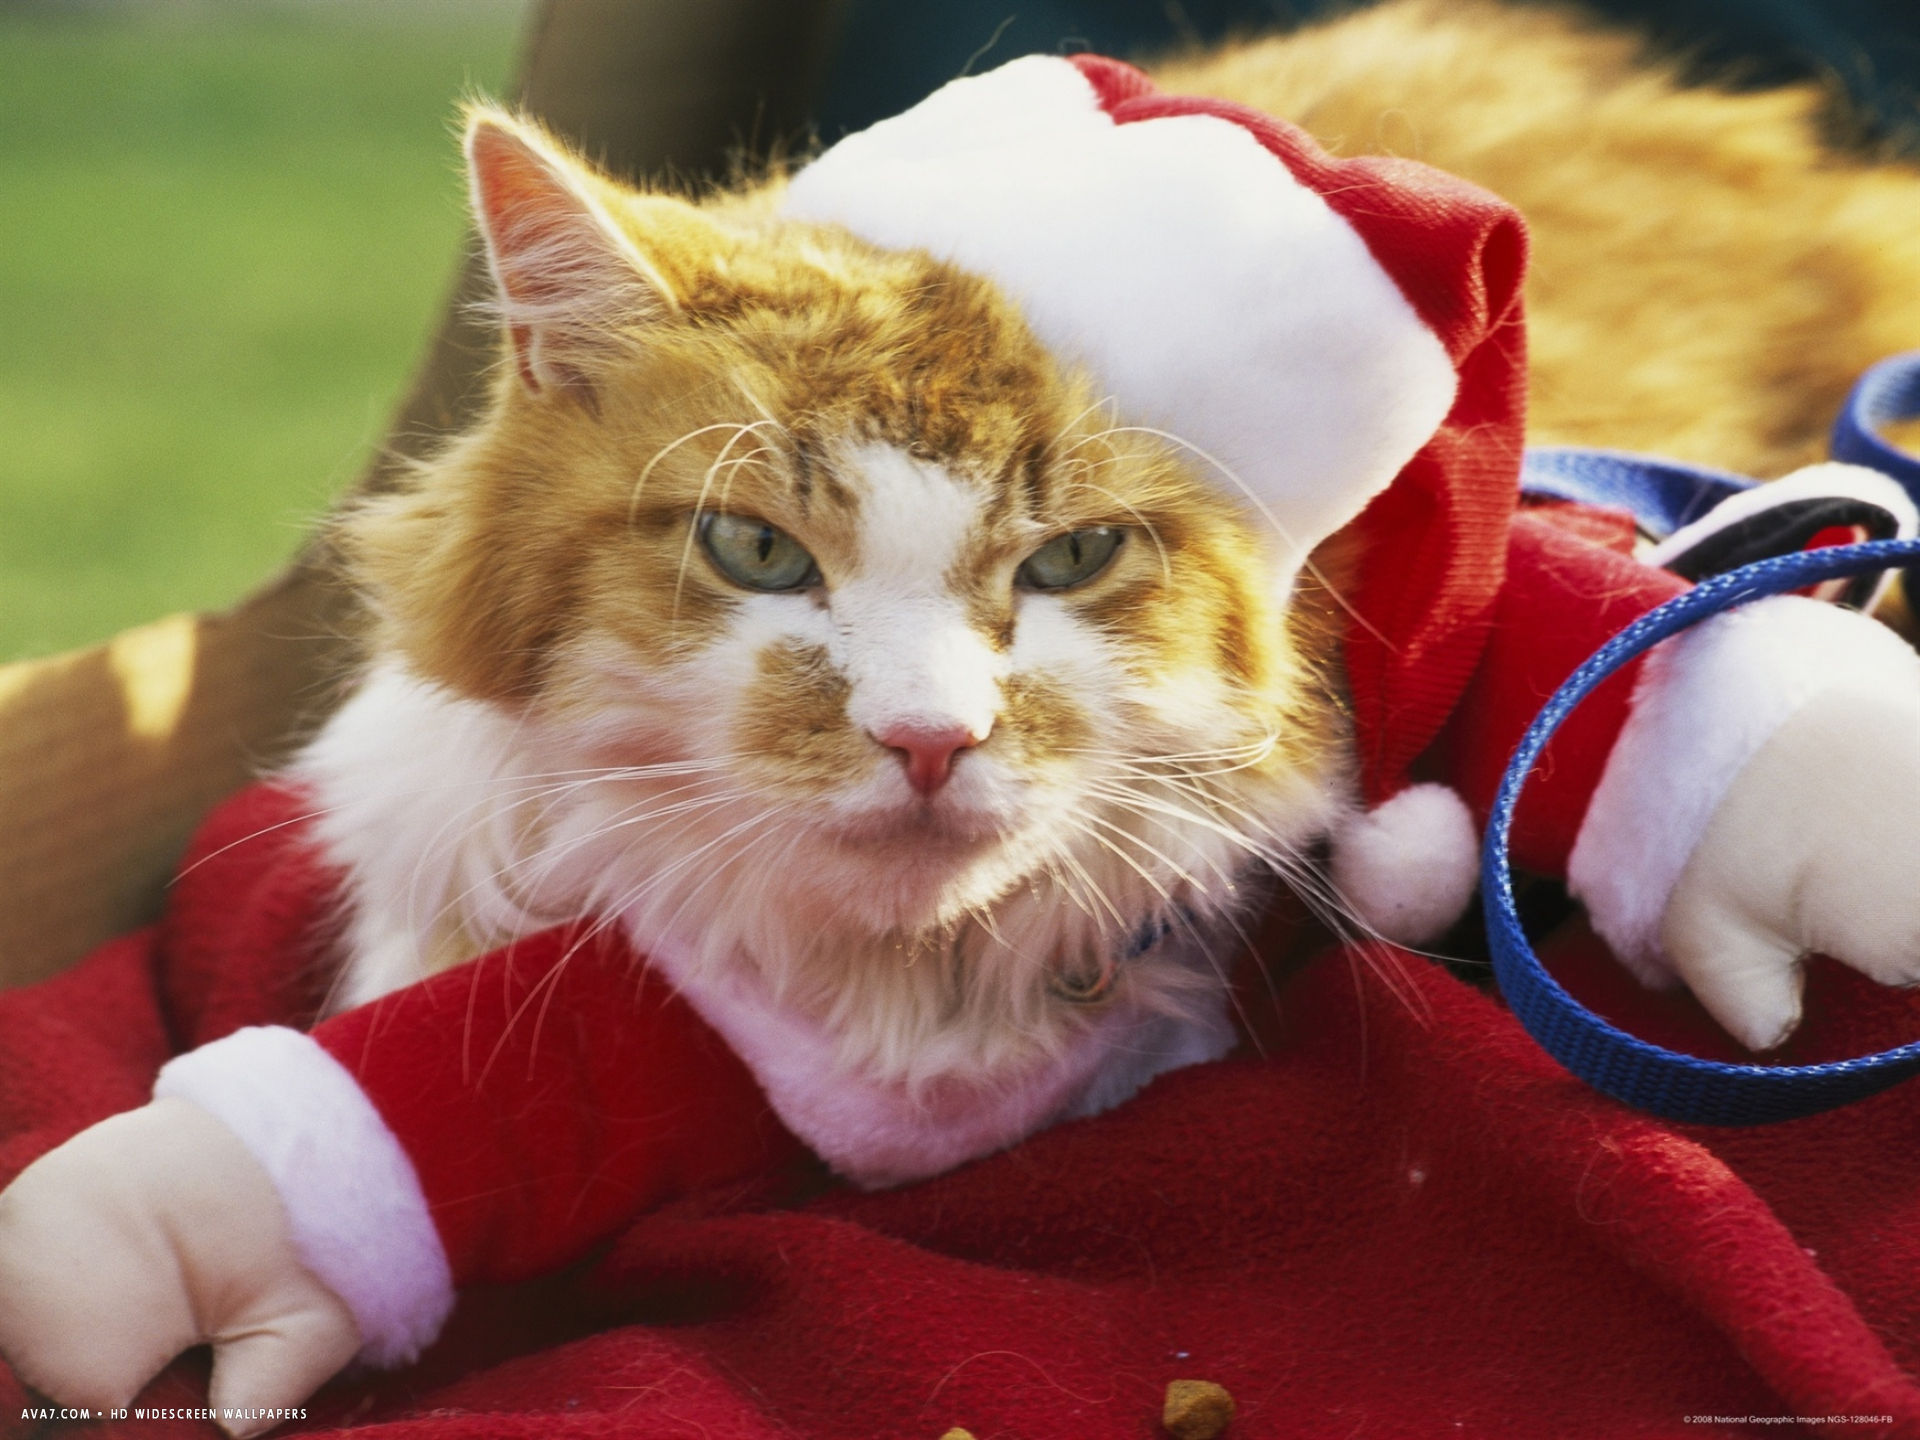 pet cat dressed as santa claus during a halloween celebration